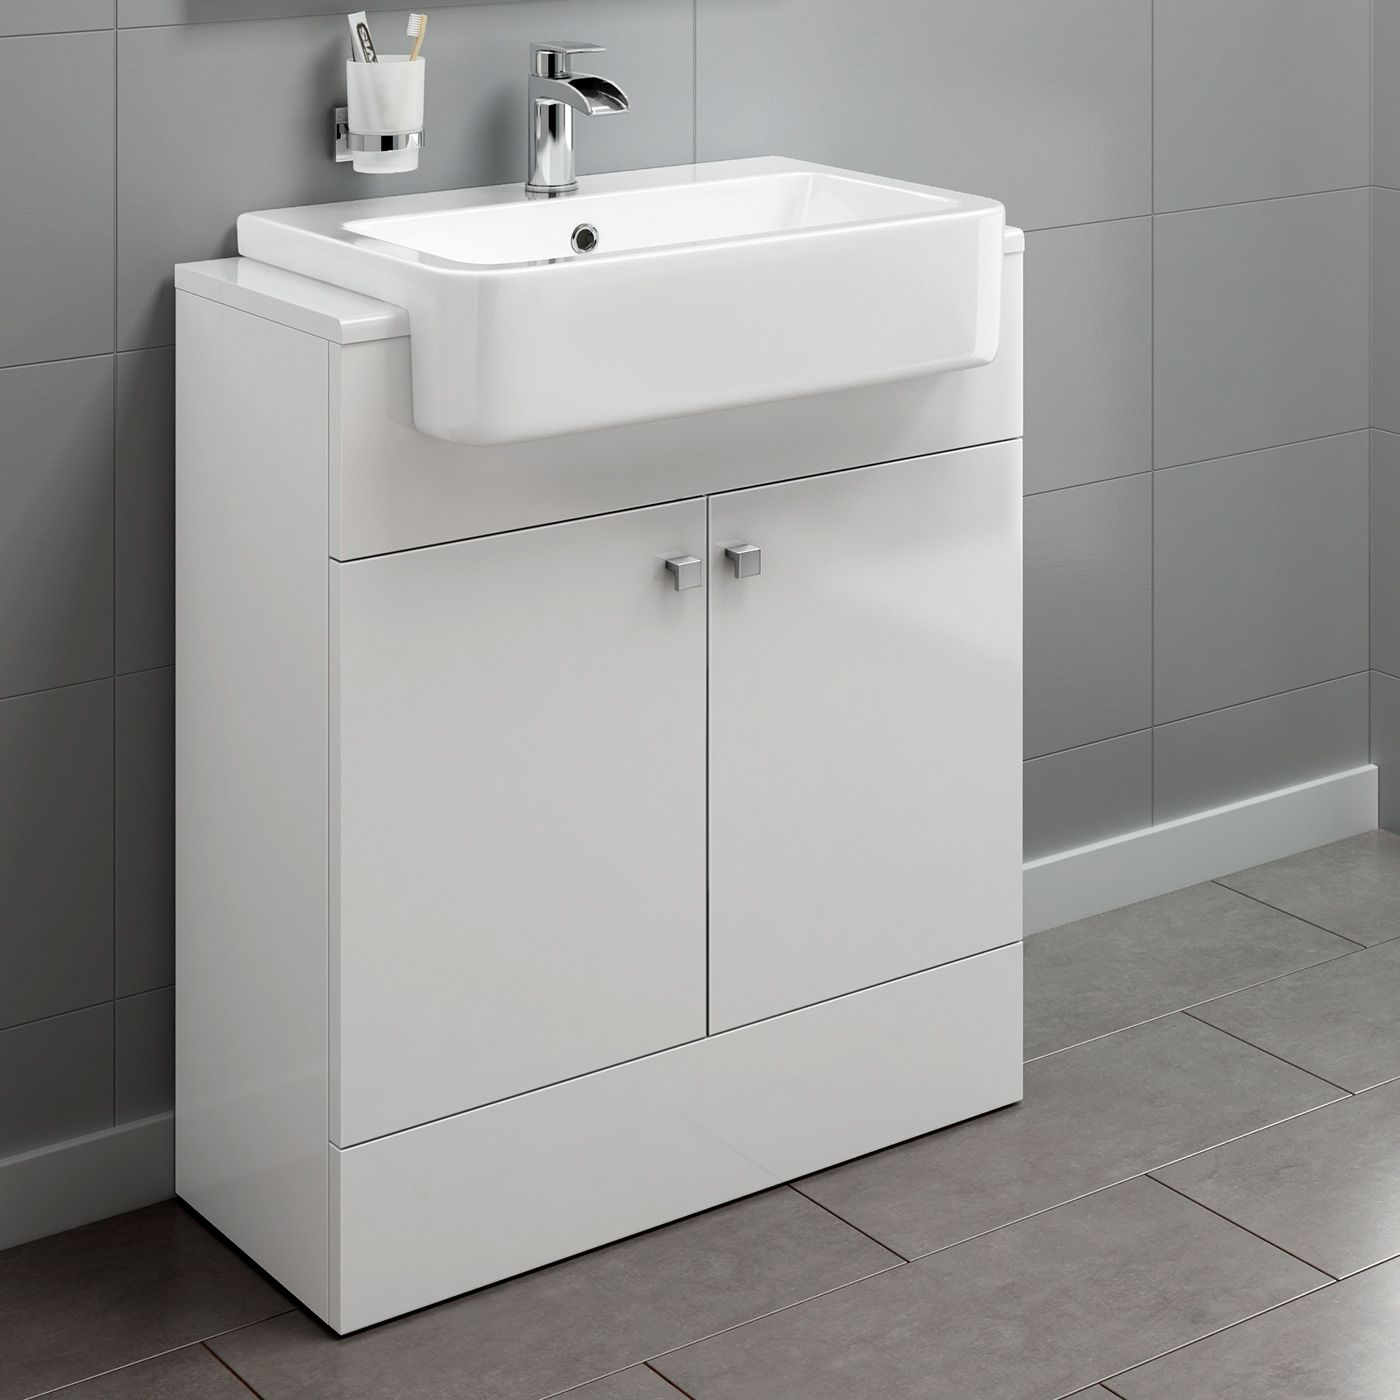 660mm Harper Gloss White Floor Standing Basin Vanity Unit Soak Com Bathroom Sink Vanity Units Bathroom Furniture Storage Sink Vanity Unit